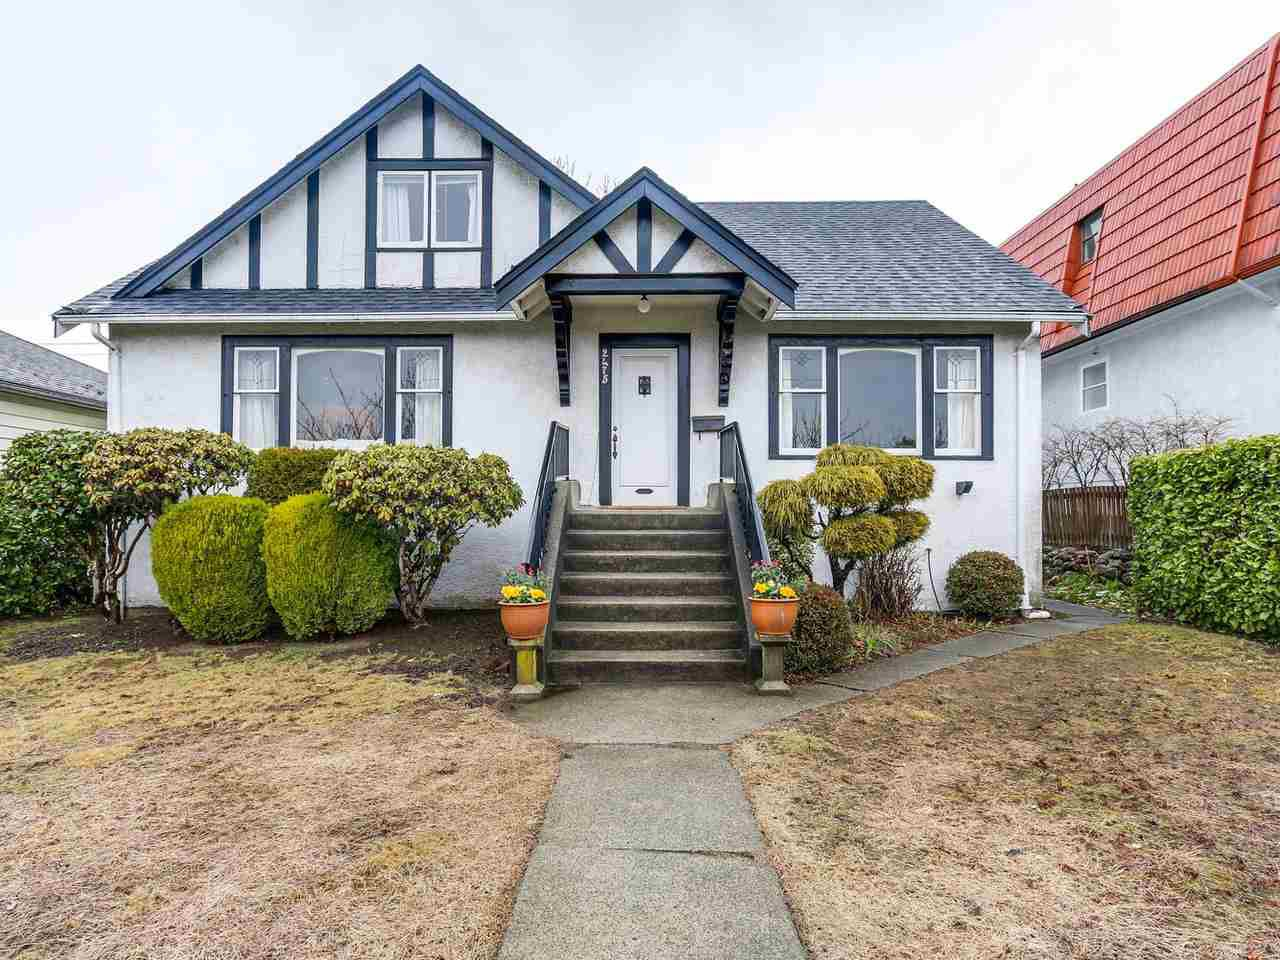 Main Photo: 2475 W 16TH Avenue in Vancouver: Kitsilano House for sale (Vancouver West)  : MLS®# R2143783